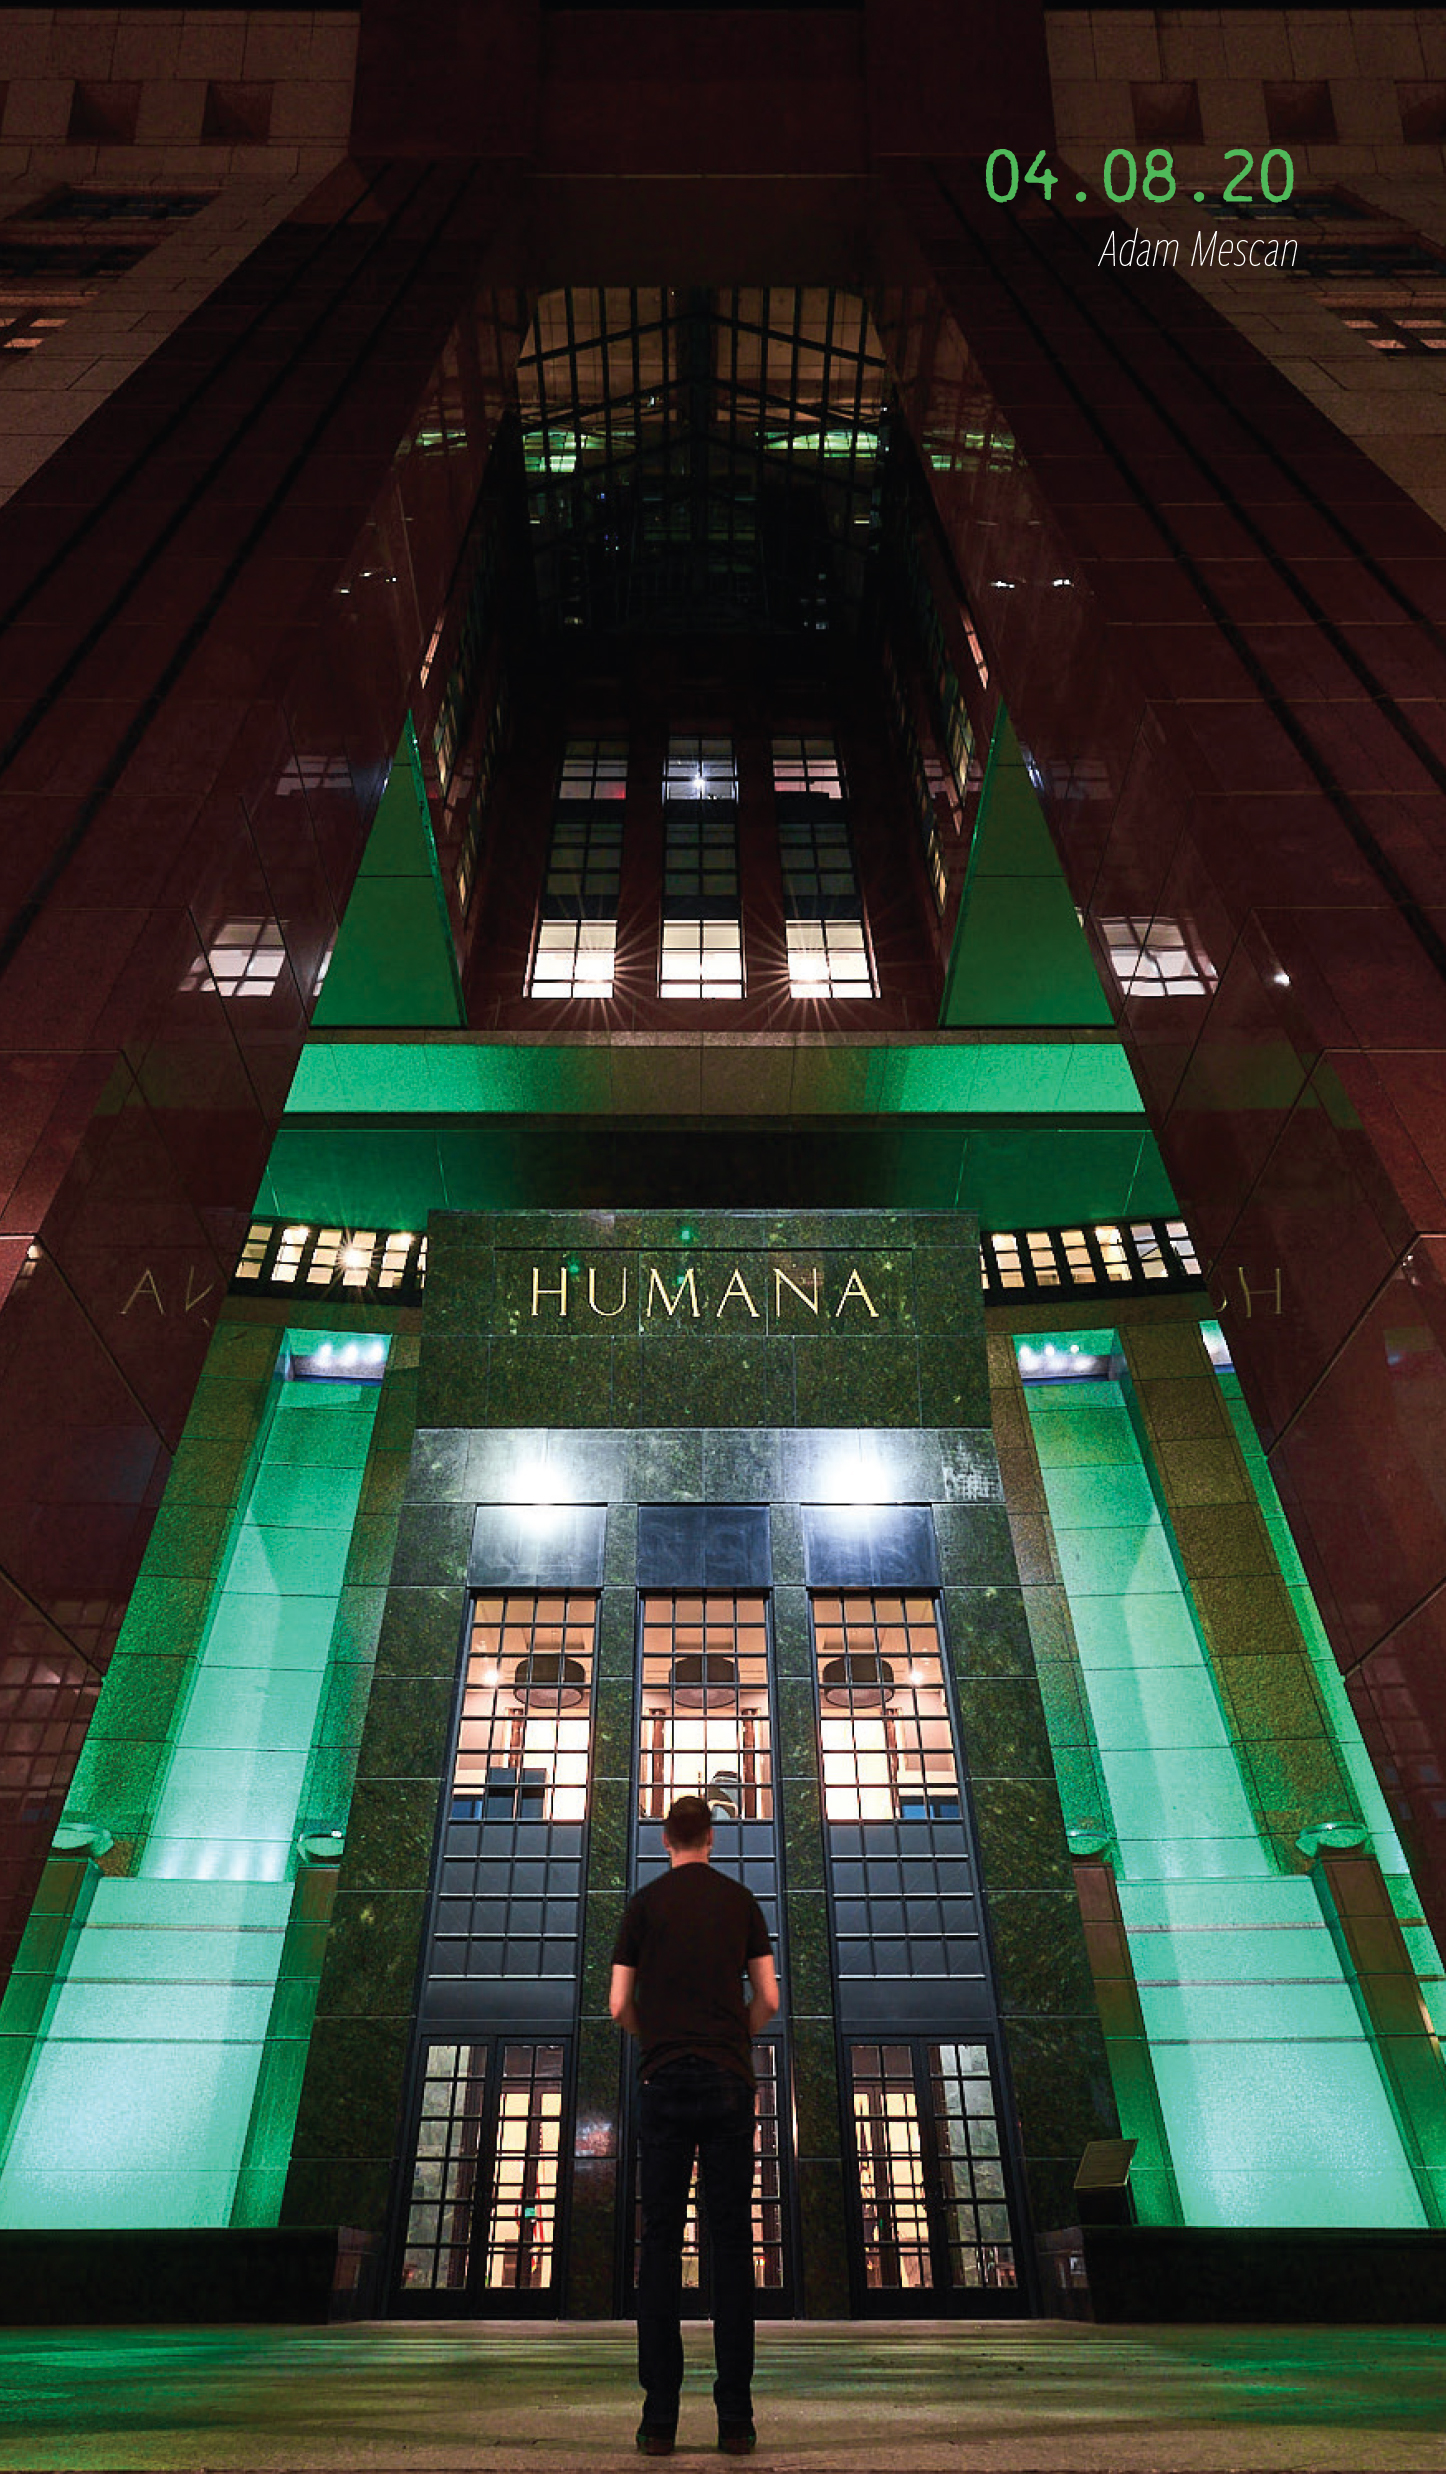 The Humana building, lit in green light. 04.08.2020, by Adam Mescan